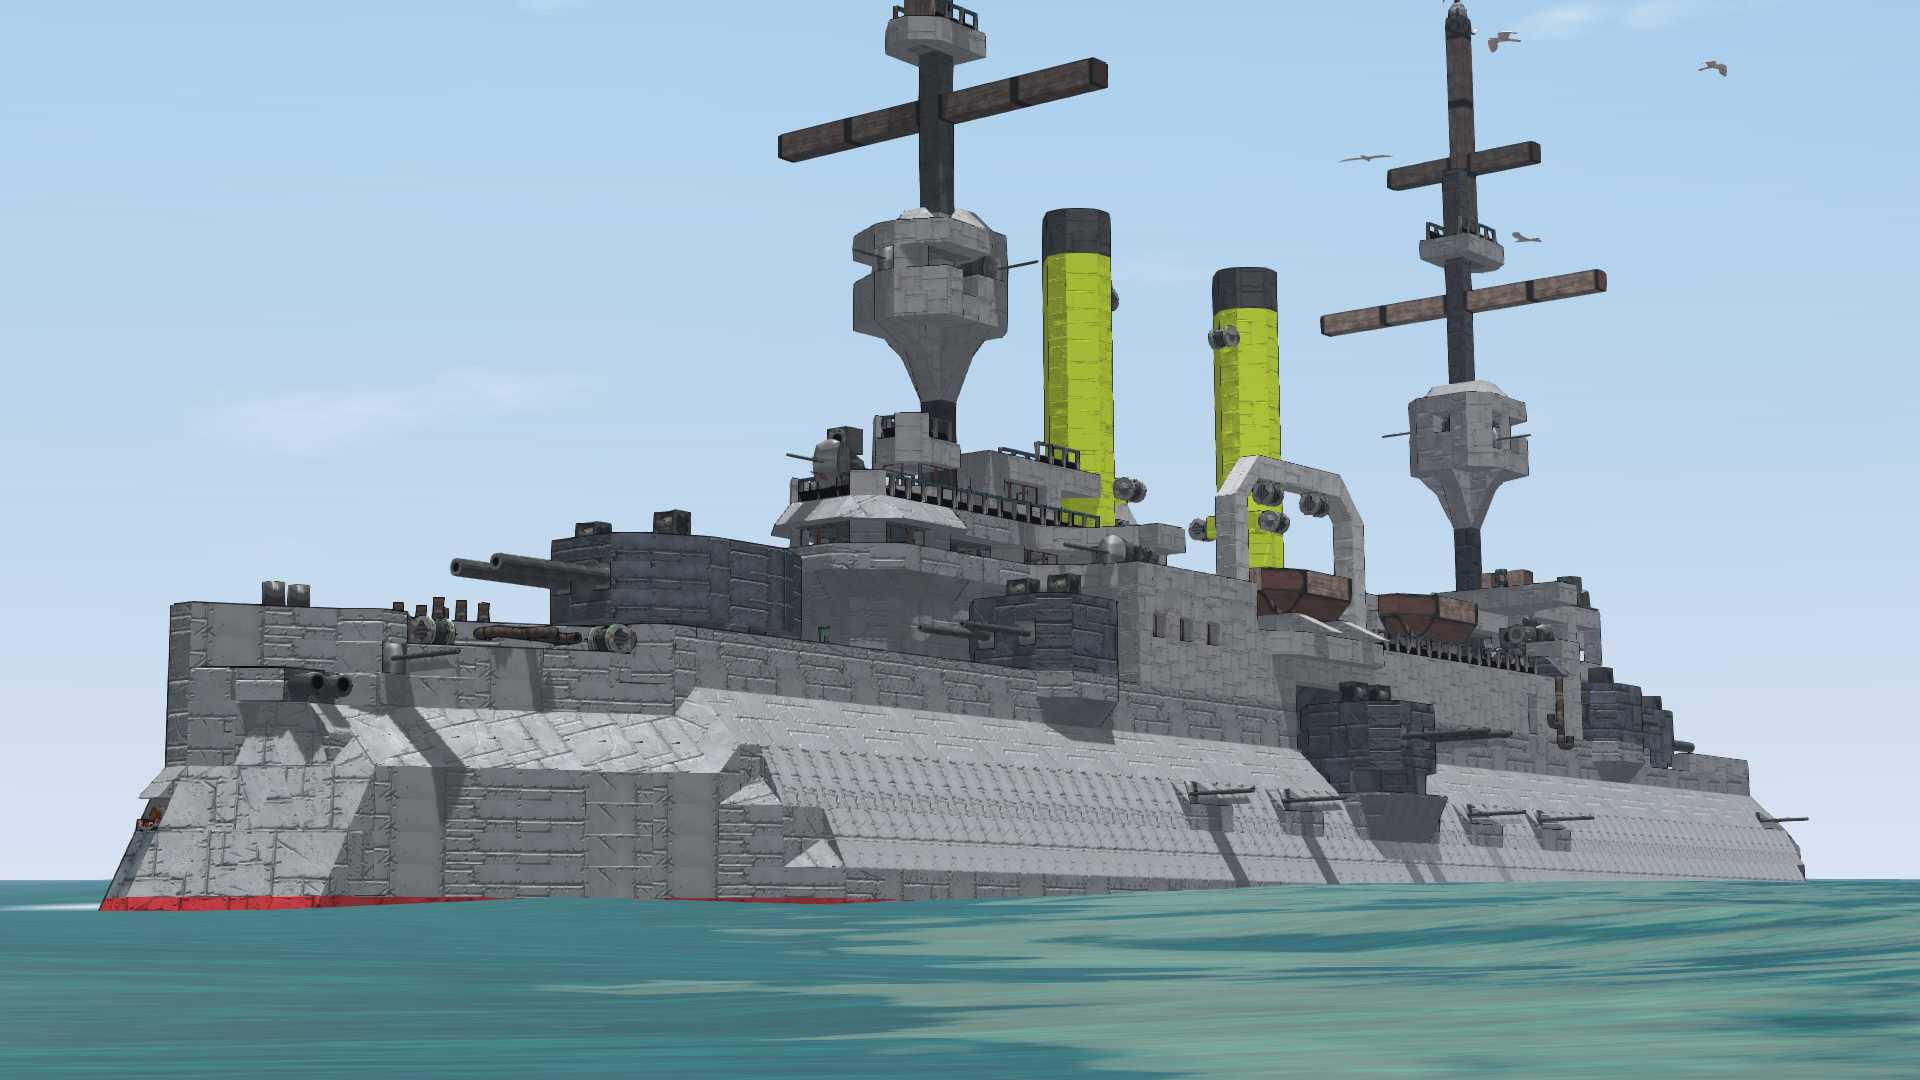 Tsesarevich Is A Historical Russian Battleship Which Saw Combat In The  1904/05 Russo Japanese War And Also In The First World War.